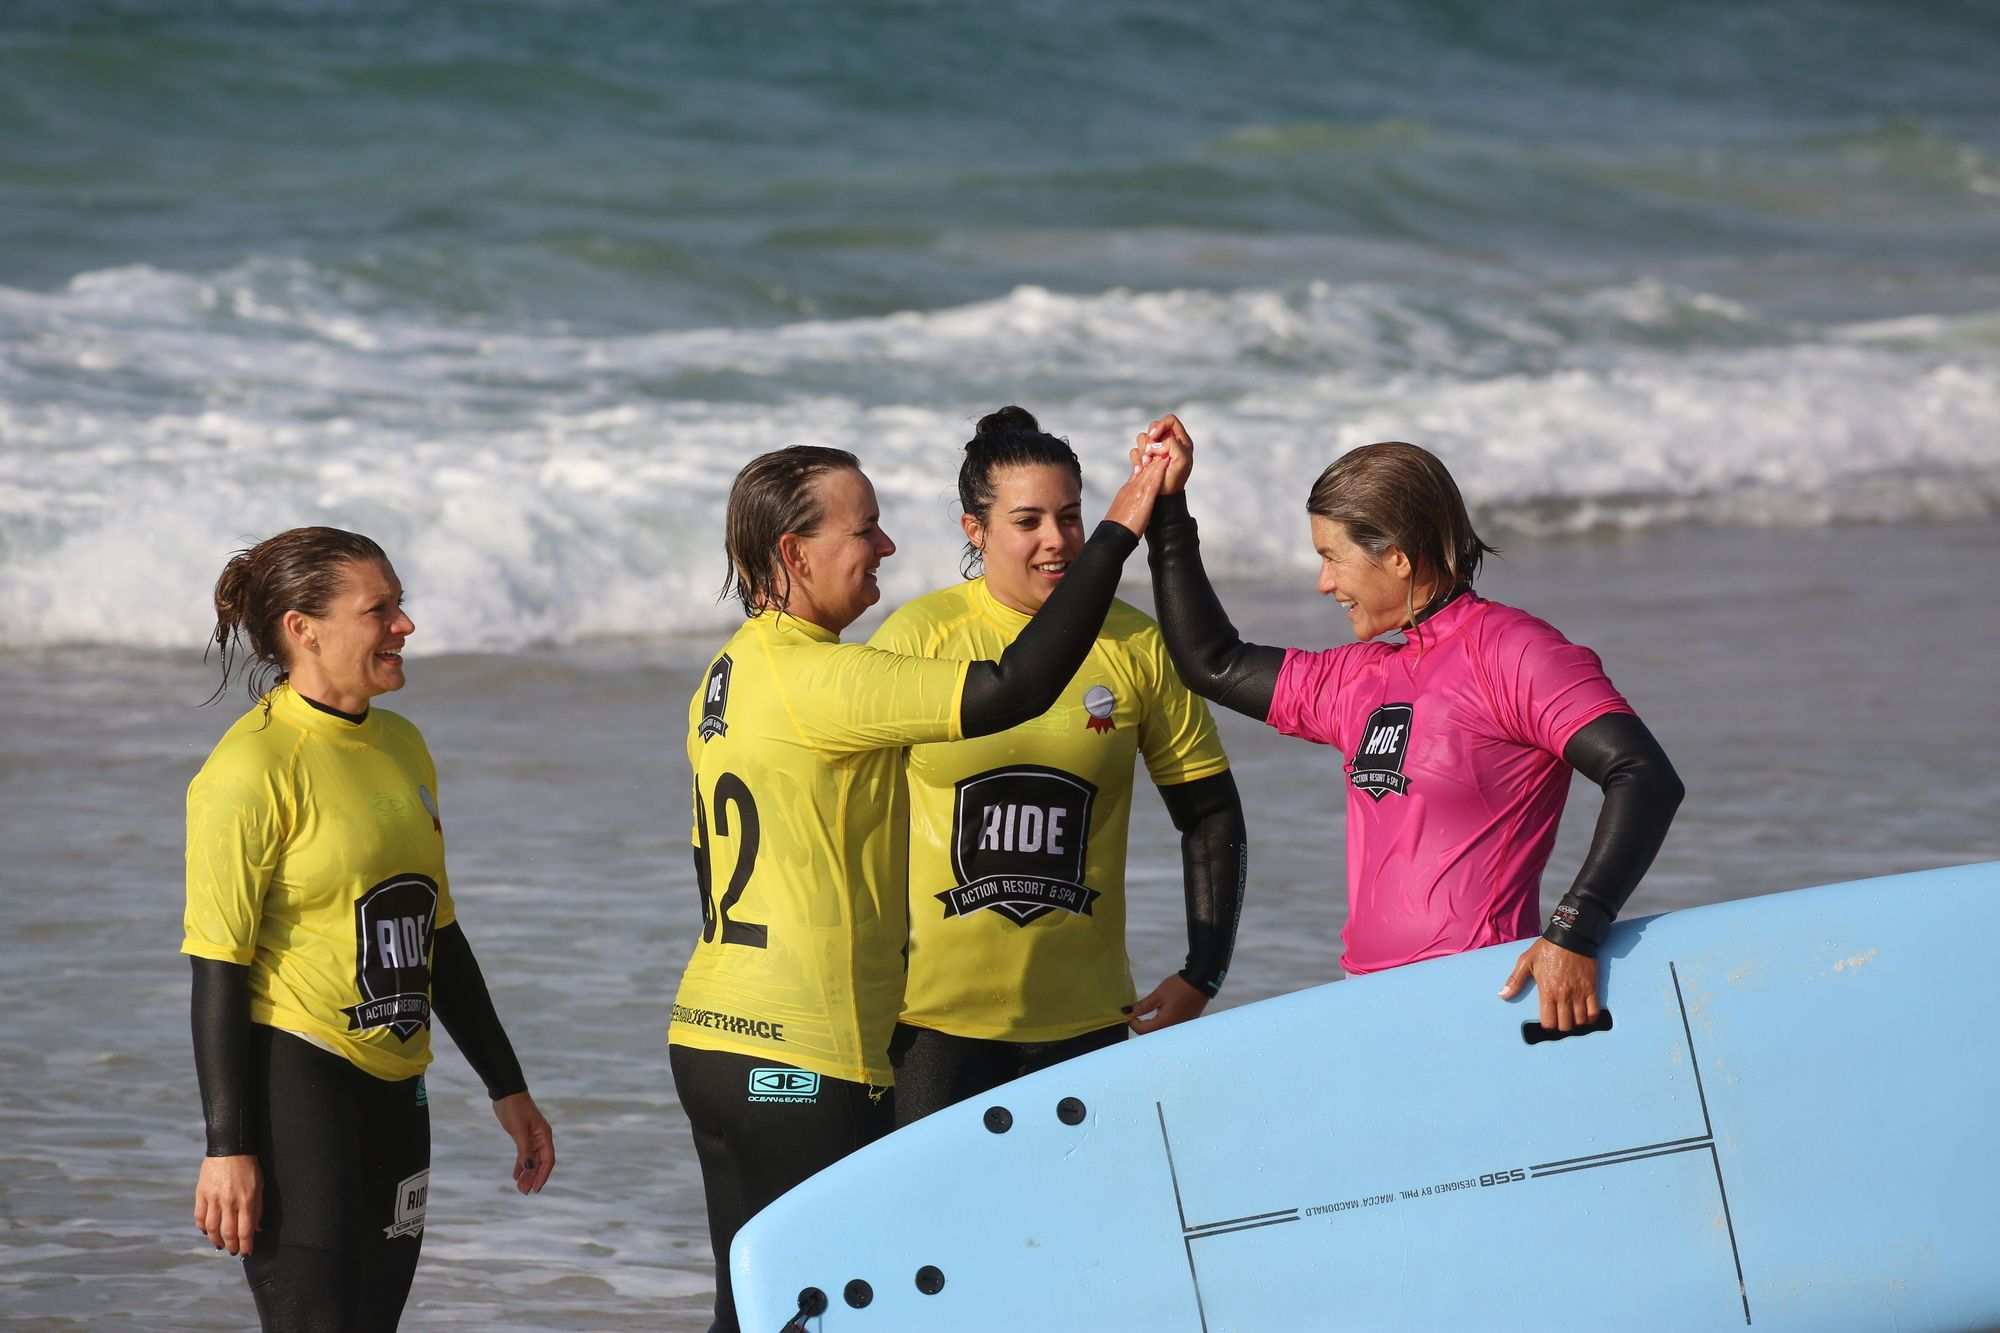 500/Photos/academies/Surf school/hotel-ride-surf-spa-peniche-surf-cours-groupe-3-JPG.jpg